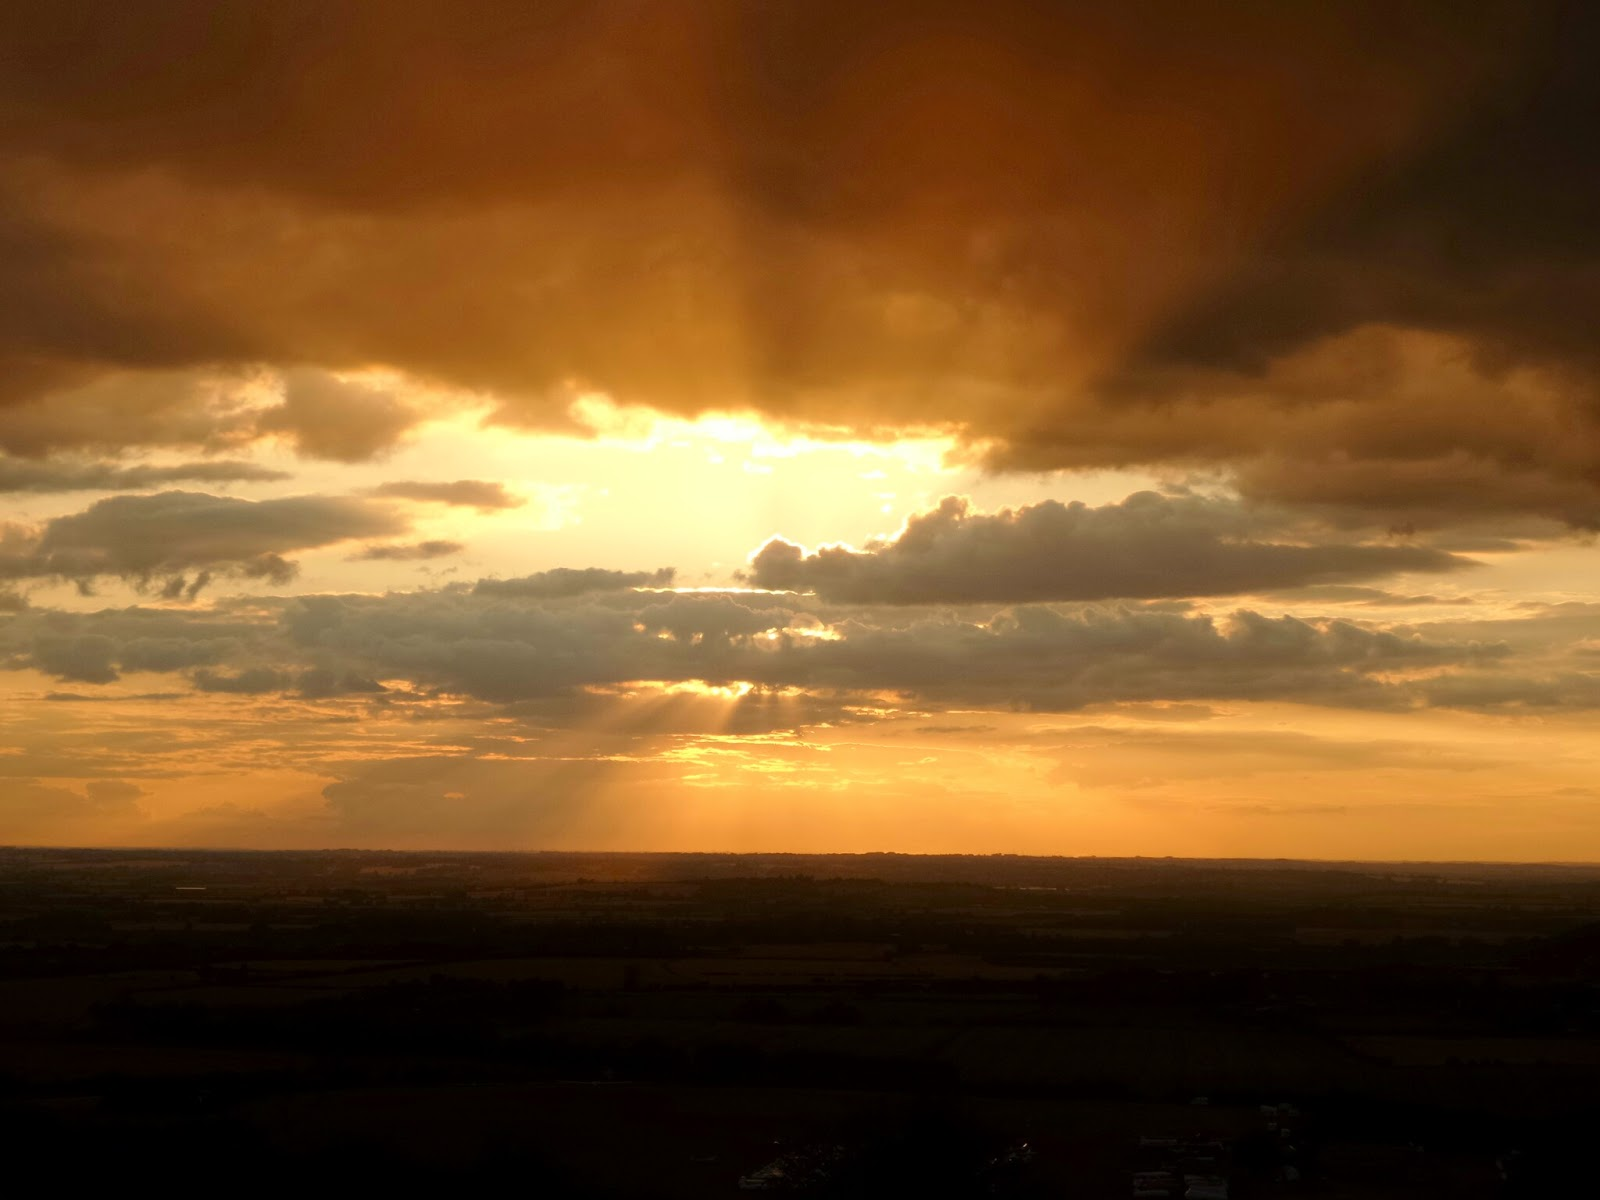 A Sunset over Dunstable Downs